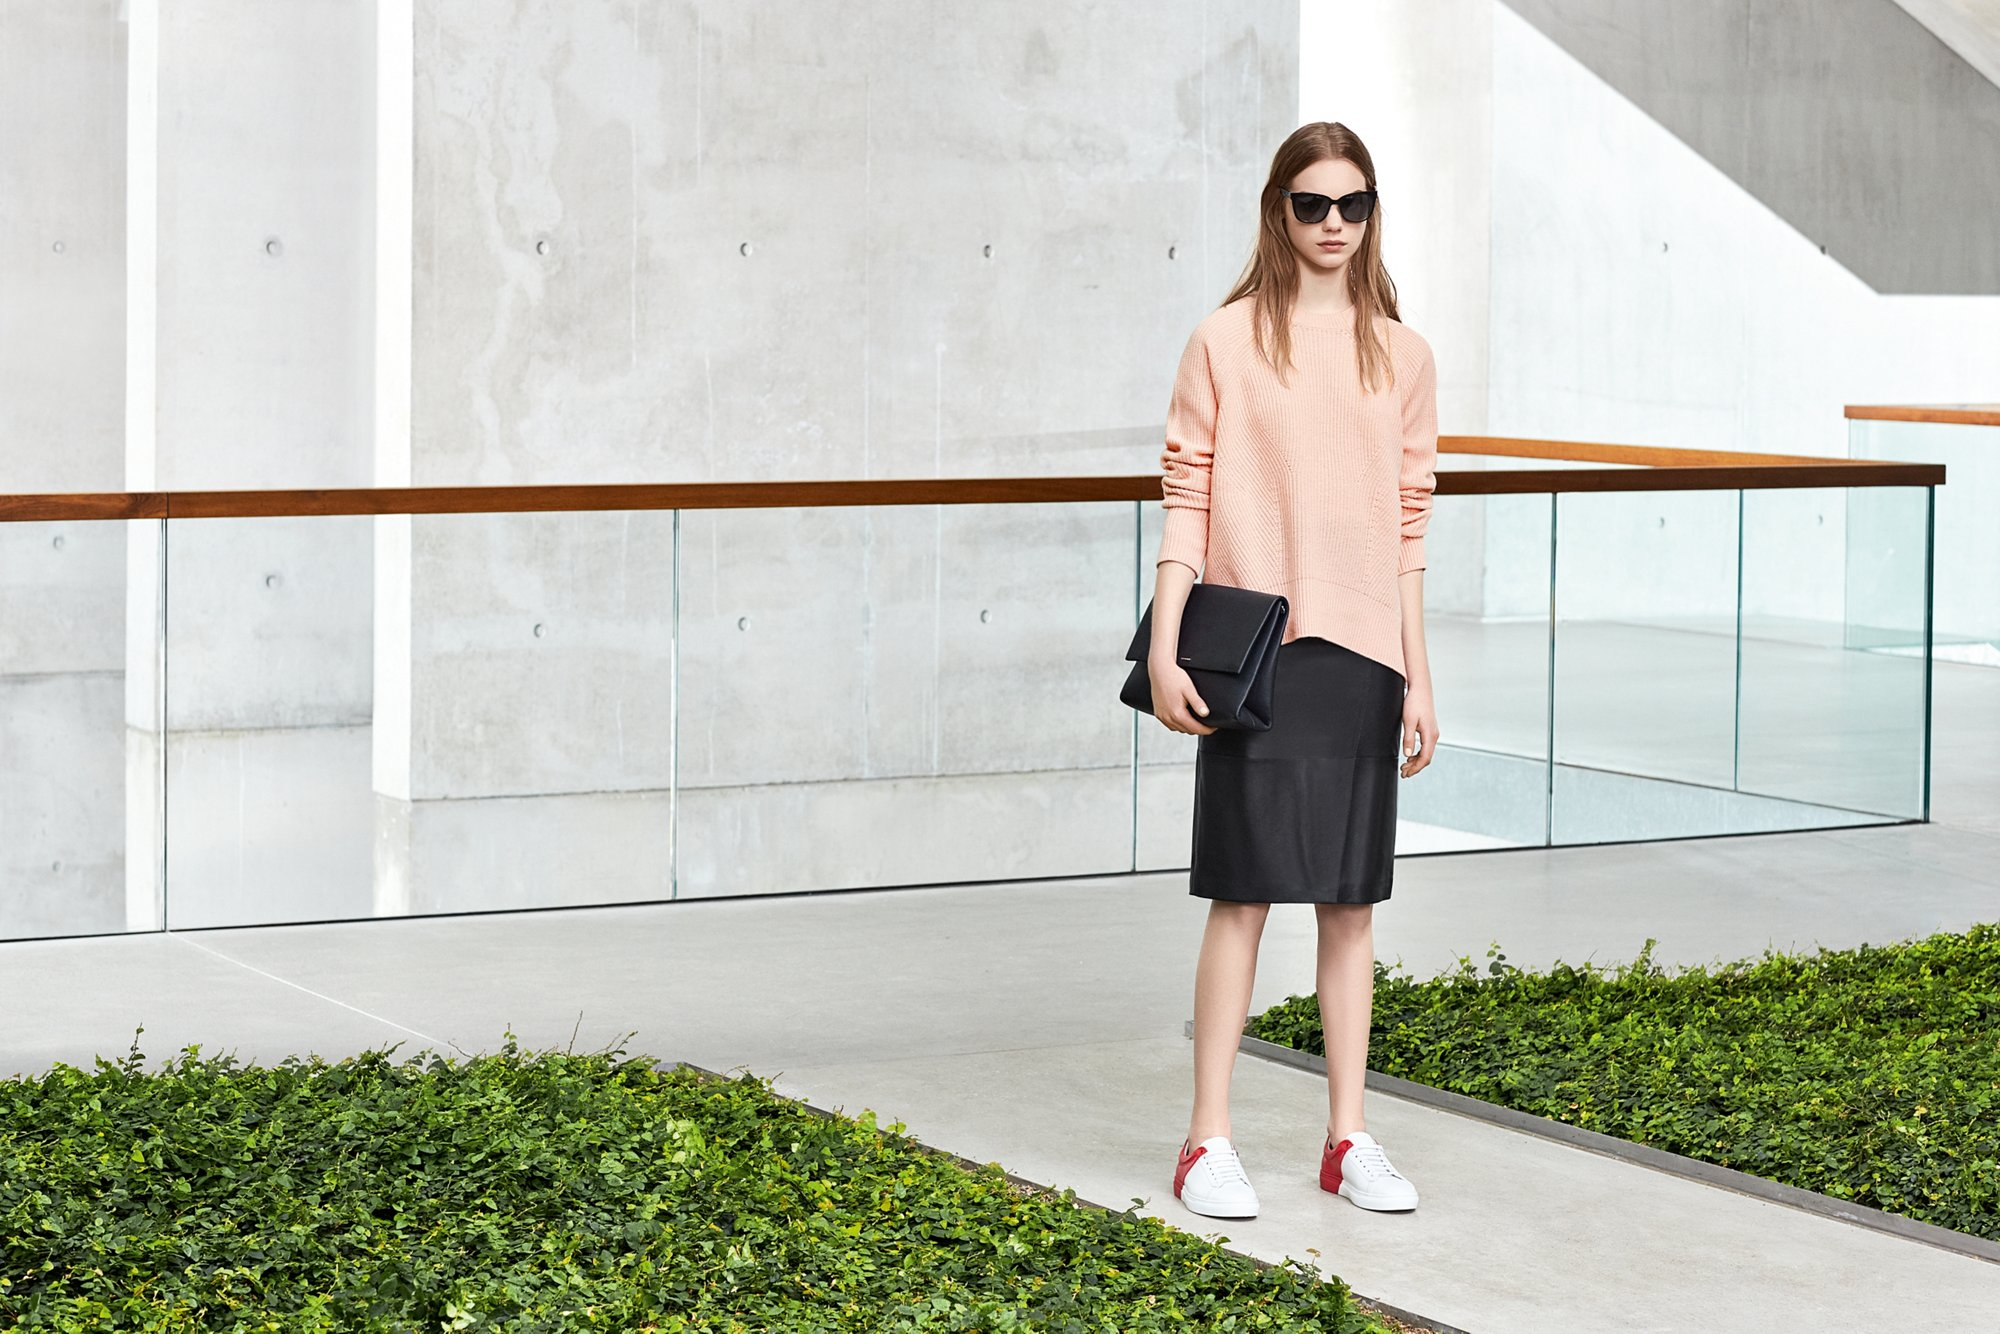 Knitwear, leather skirt and bag by BOSS Womenswear